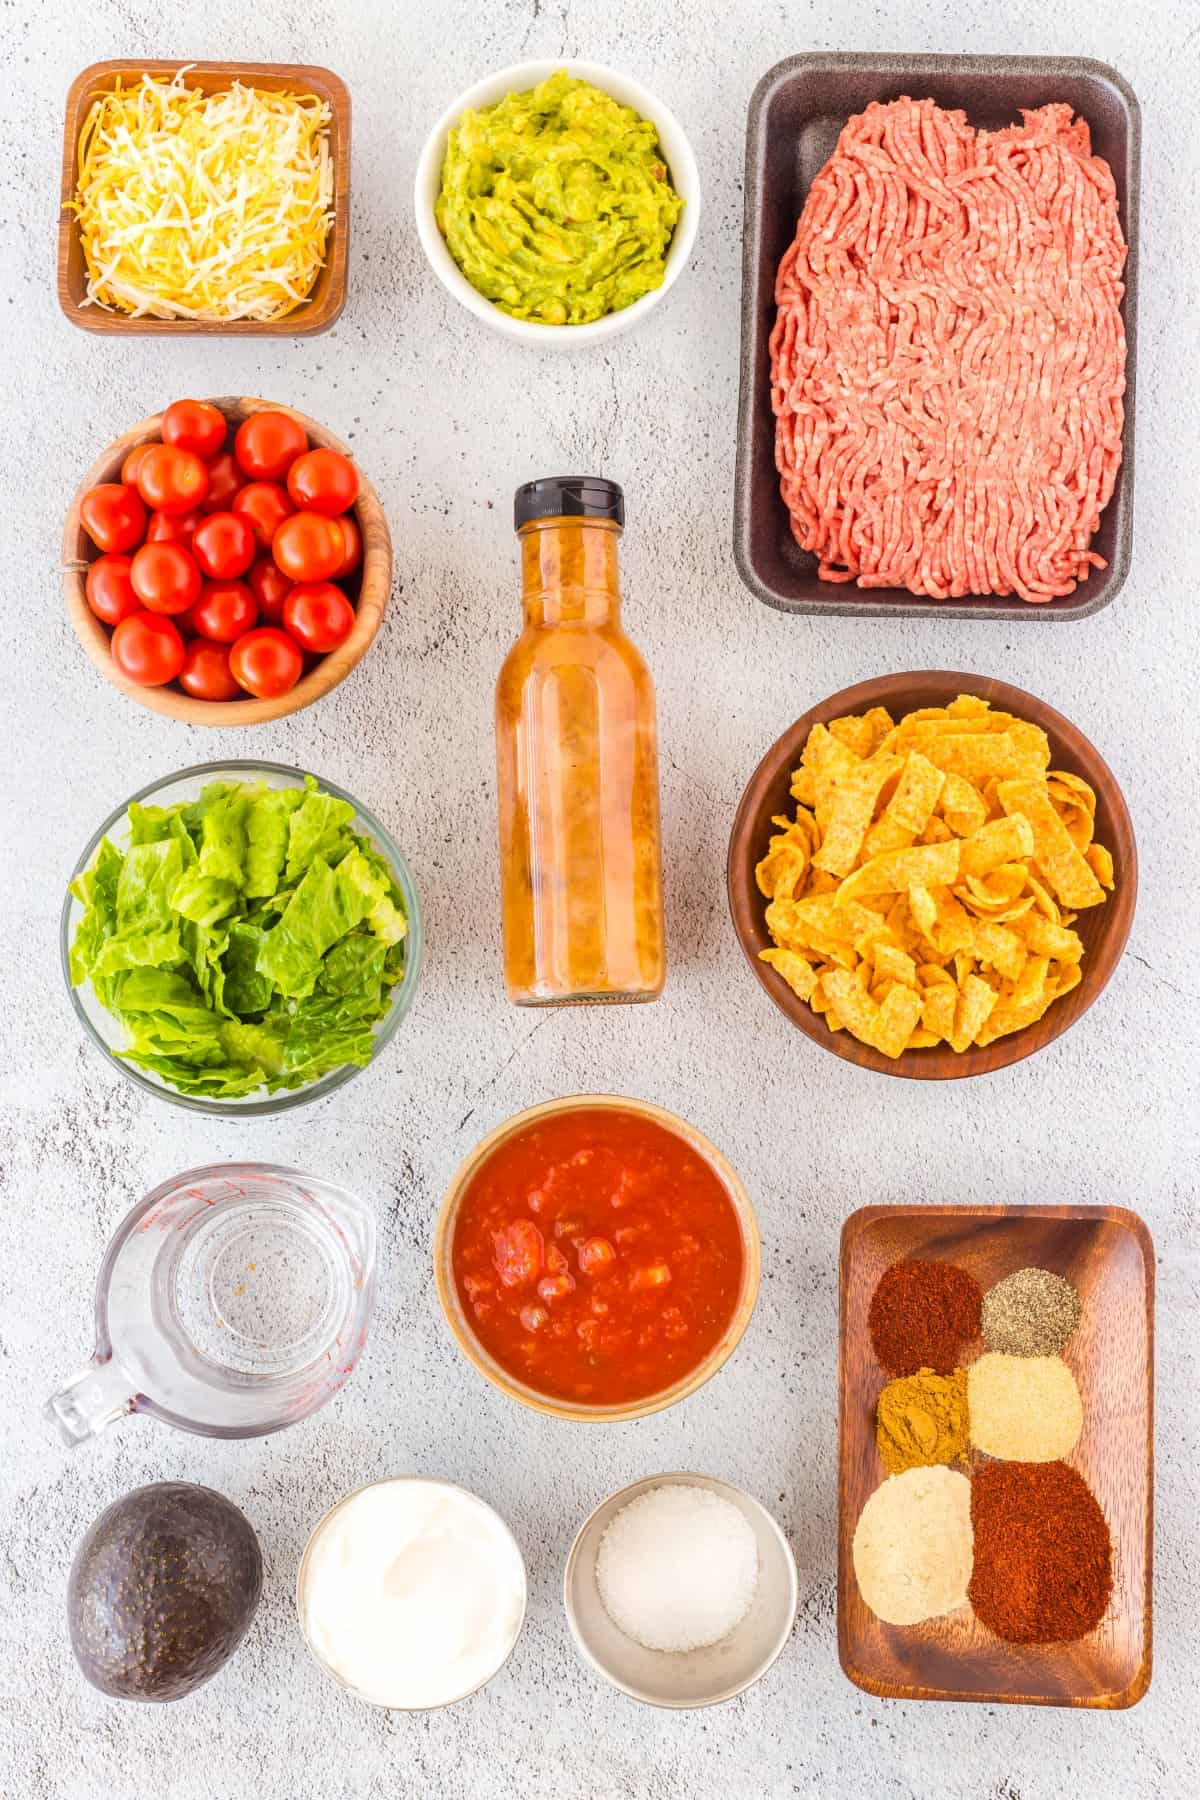 Ingredients for Easy Beef Taco Salad